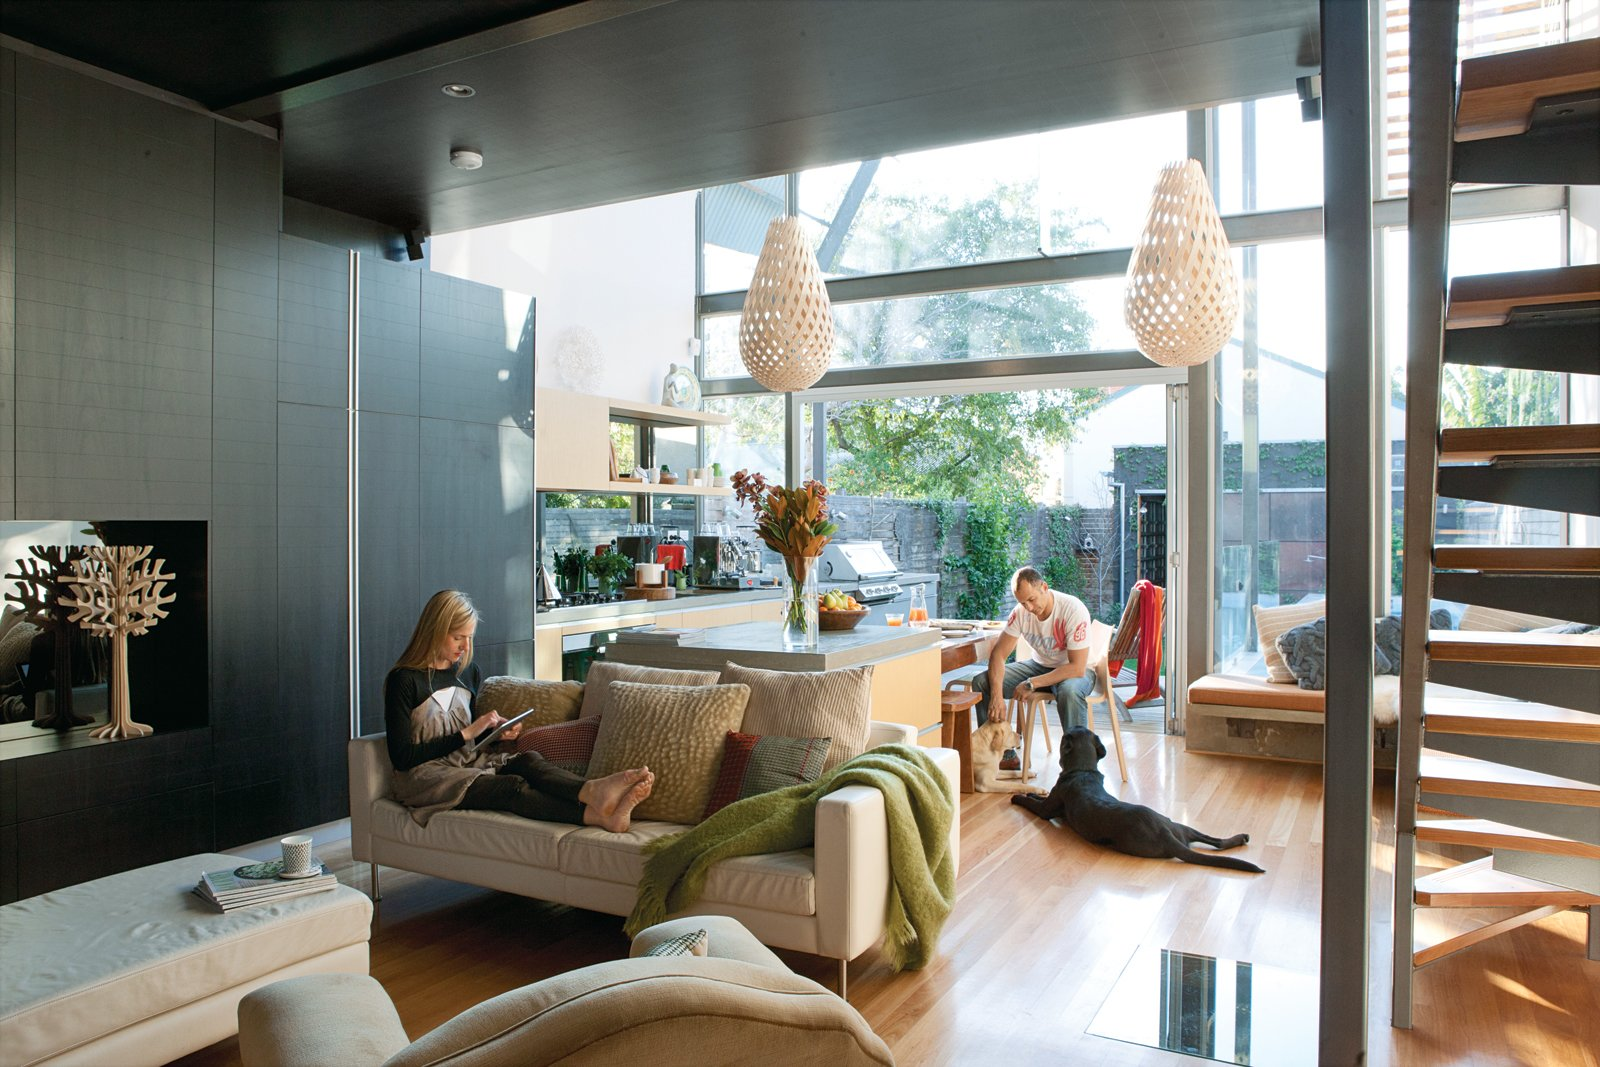 Living Room, Sofa, Pendant Lighting, Light Hardwood Floor, Chair, Ottomans, and Bench Brammy and Kyprianou hung Koura pendant lights by New Zealand designer David Trubridge above the dining area. Their organic forms and diamond-shaped shadows create intimacy in the vast space. Among Bilardo's contributions were the black tulipwood cabinetry and ceiling and the cantilevered concrete countertop that appears to go through the glass wall.  Photo 3 of 9 in This Luminous Australian Renovation Packs a Lot Into a 23-Foot-Wide Lot